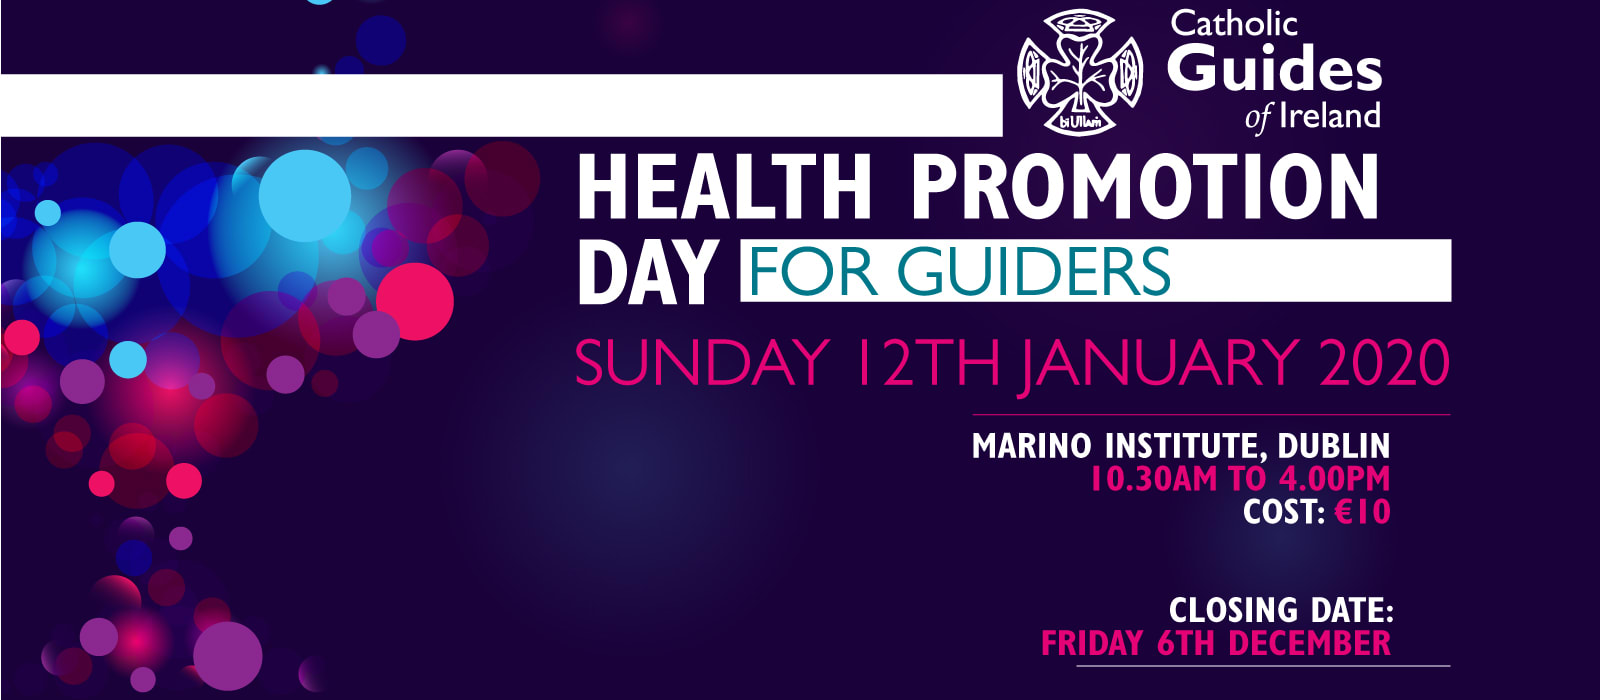 New banner image advertising Health Promotion Day for Guiders